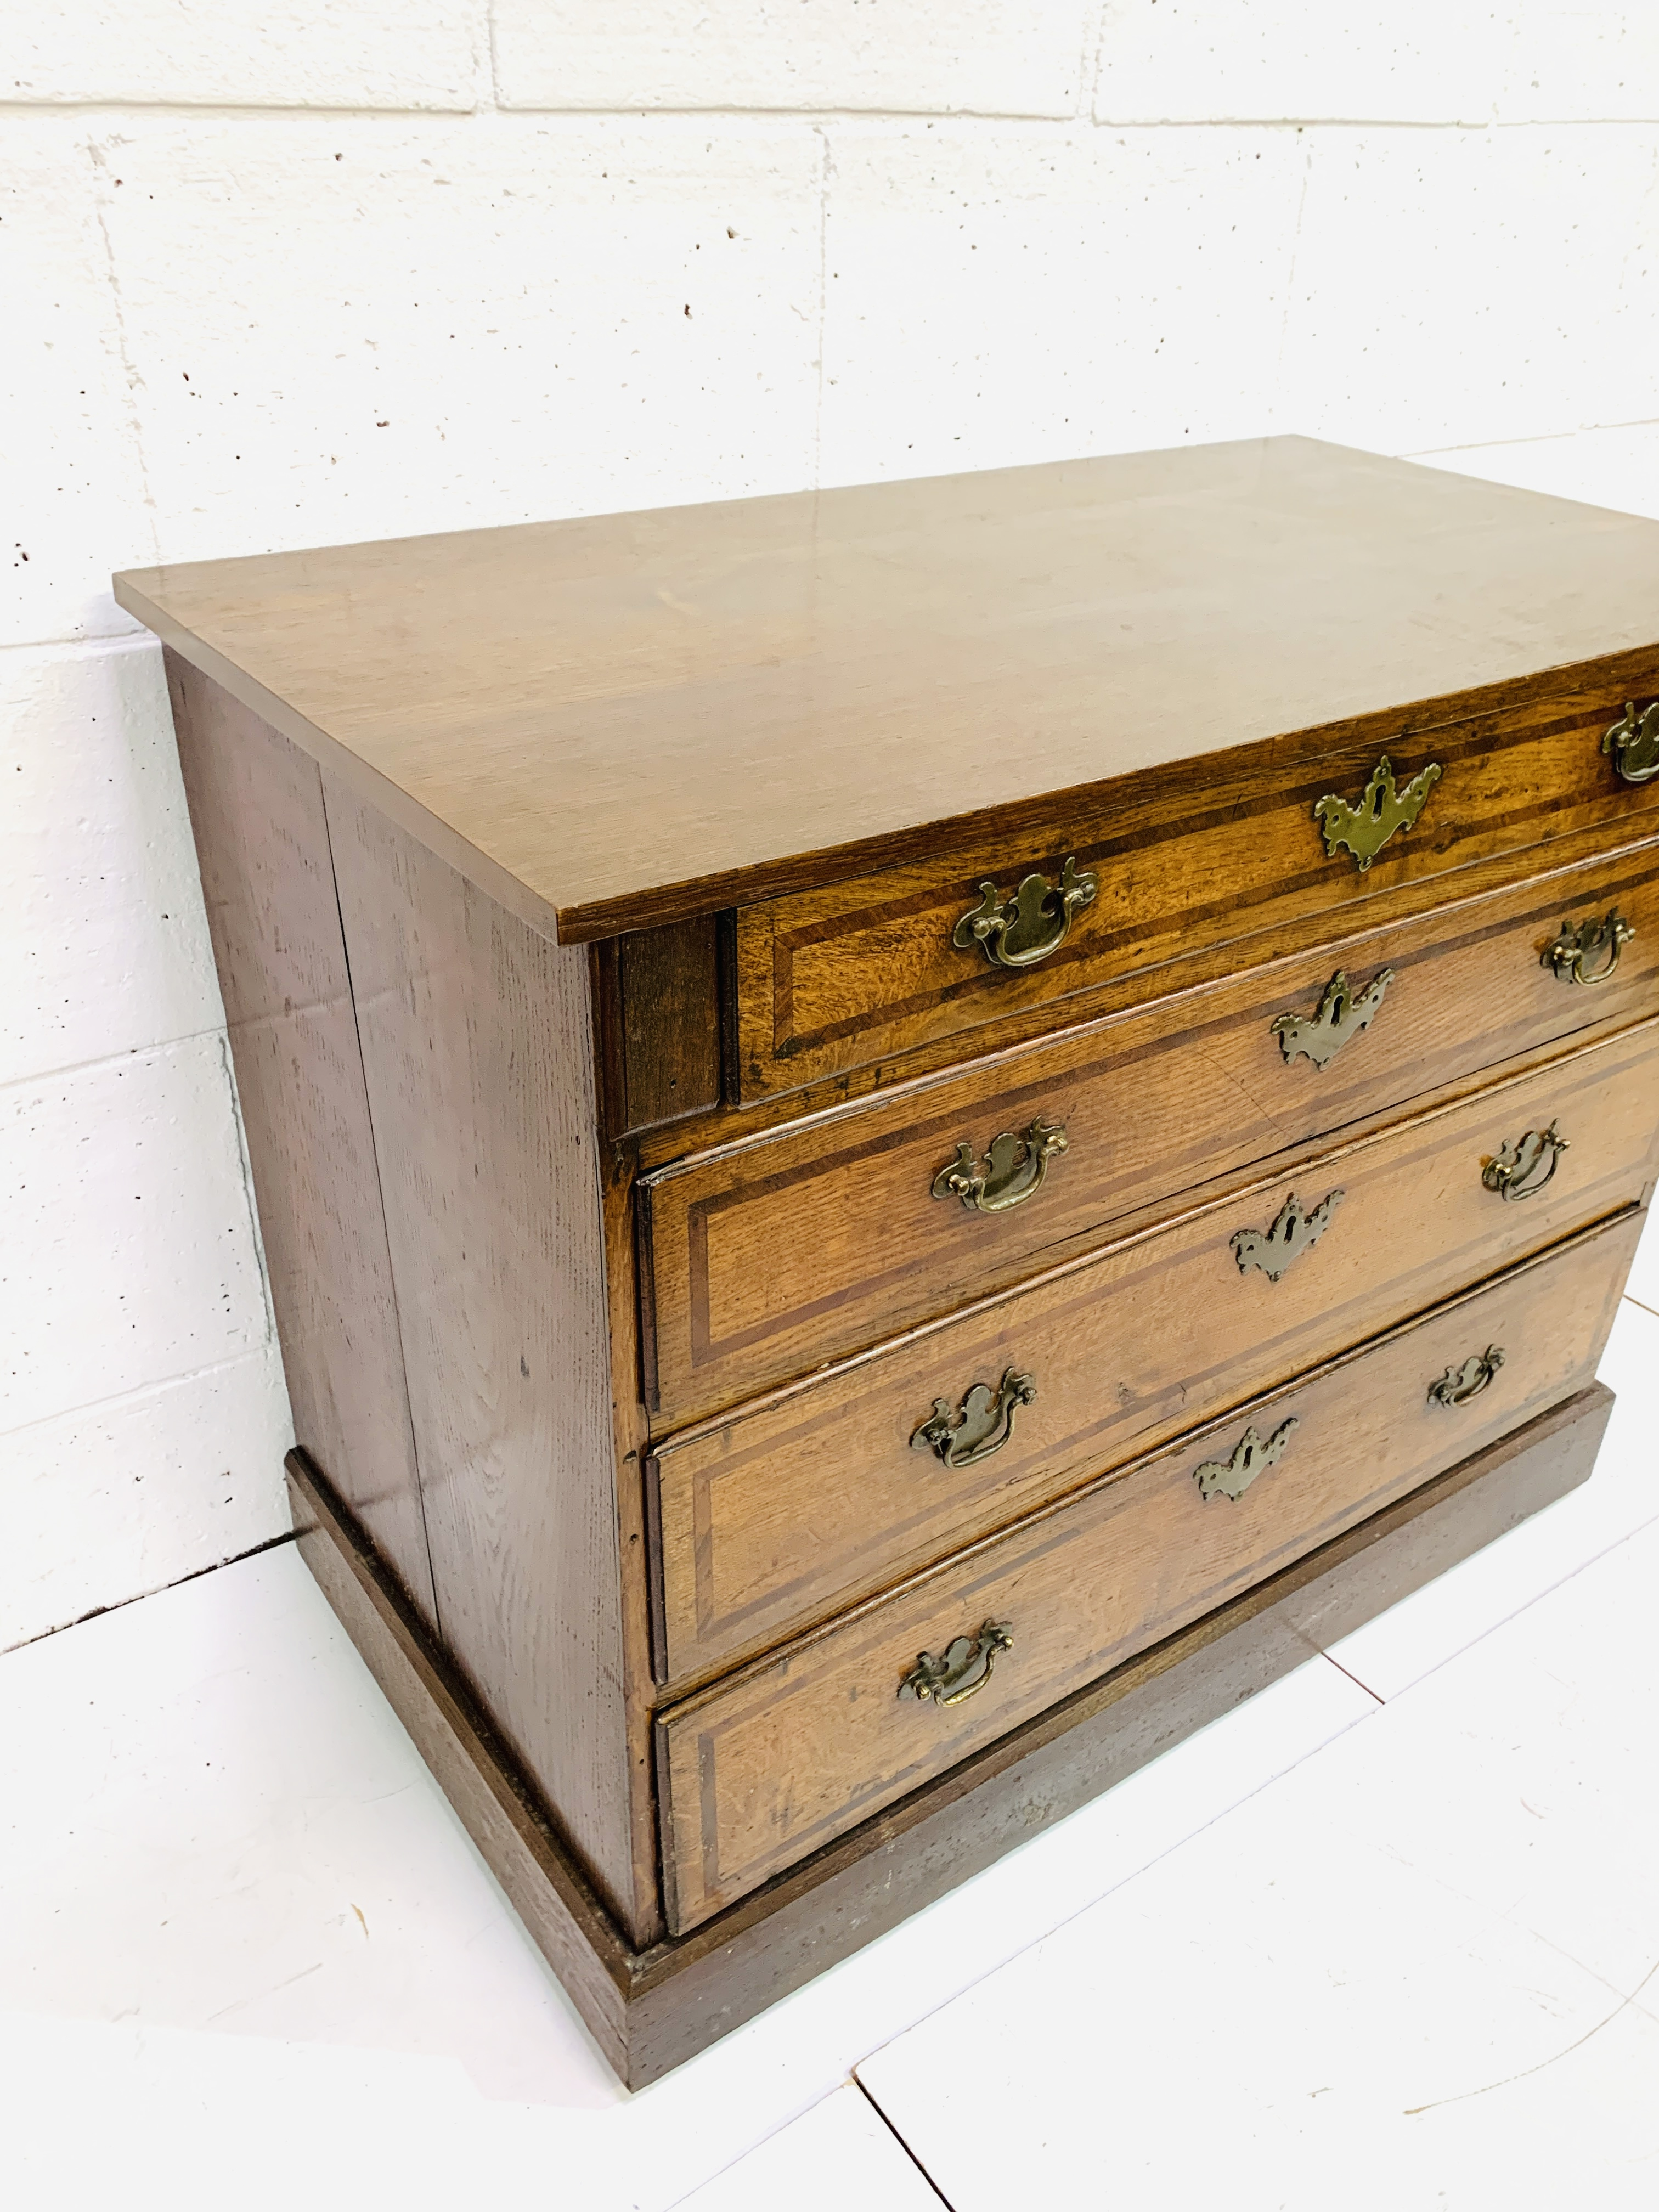 Mahogany chest of four graduated drawers - Image 3 of 5